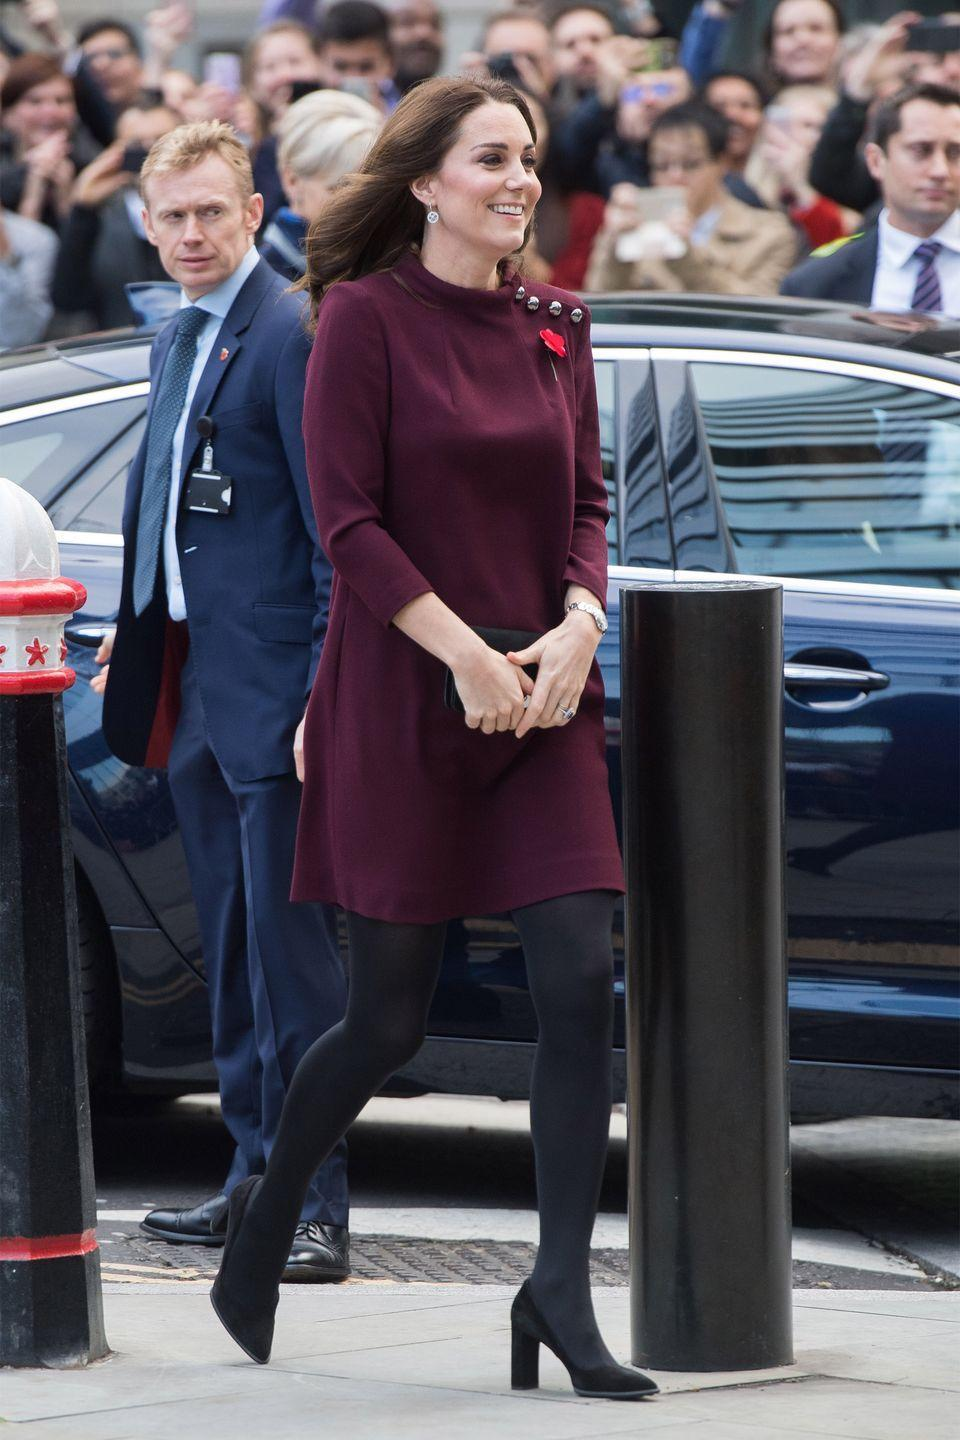 <p>In a plum mod dress with silver button accents by Goat, black tights, and black suede pumps at the annual Place2Be School Leaders Forum in London.</p>